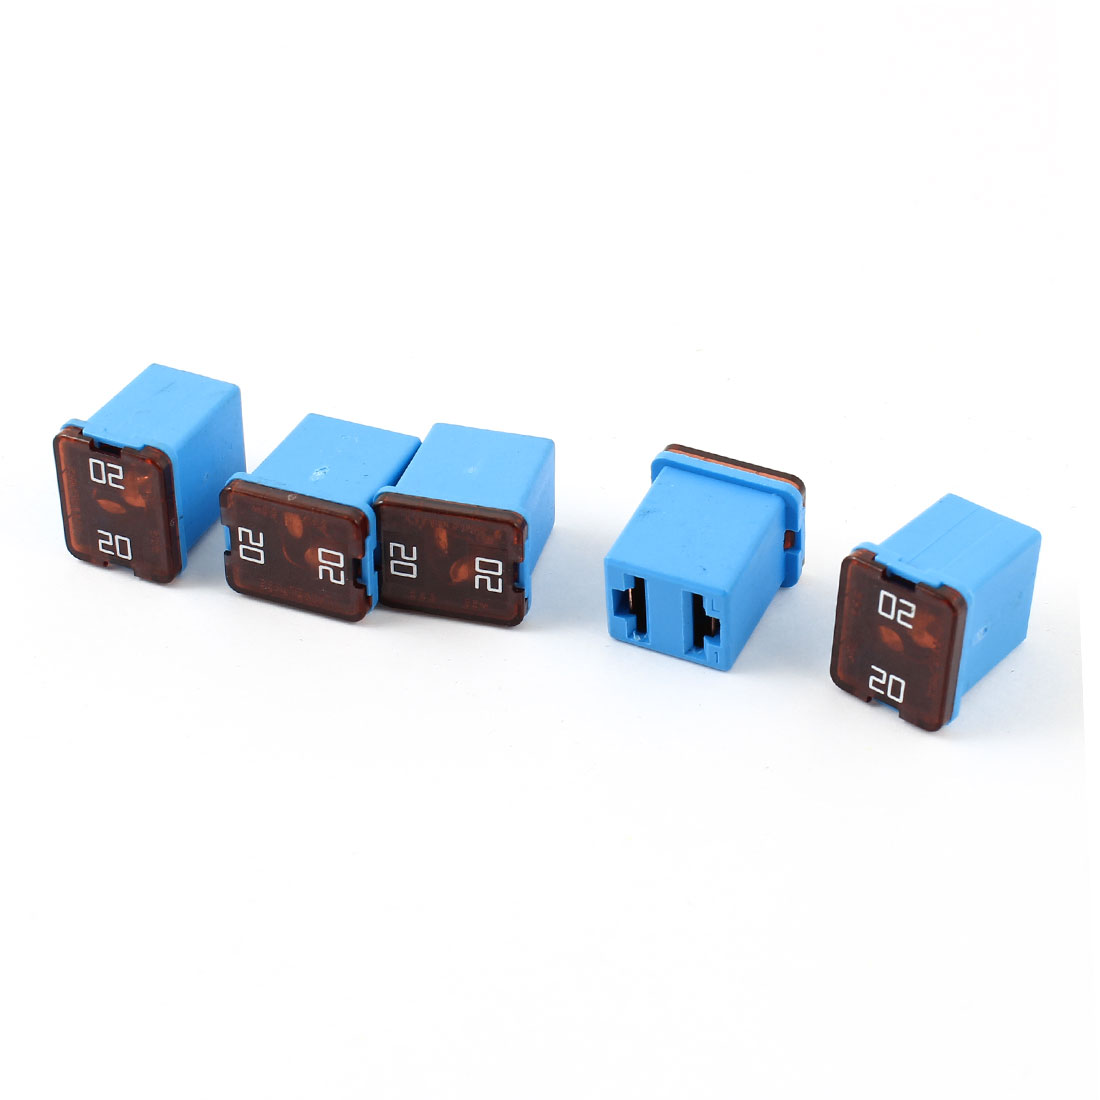 5 Pcs 12V-58V 20A Car 2 Terminals Female Socket PAL Cartridge Circuit Breaker Fuse Blue